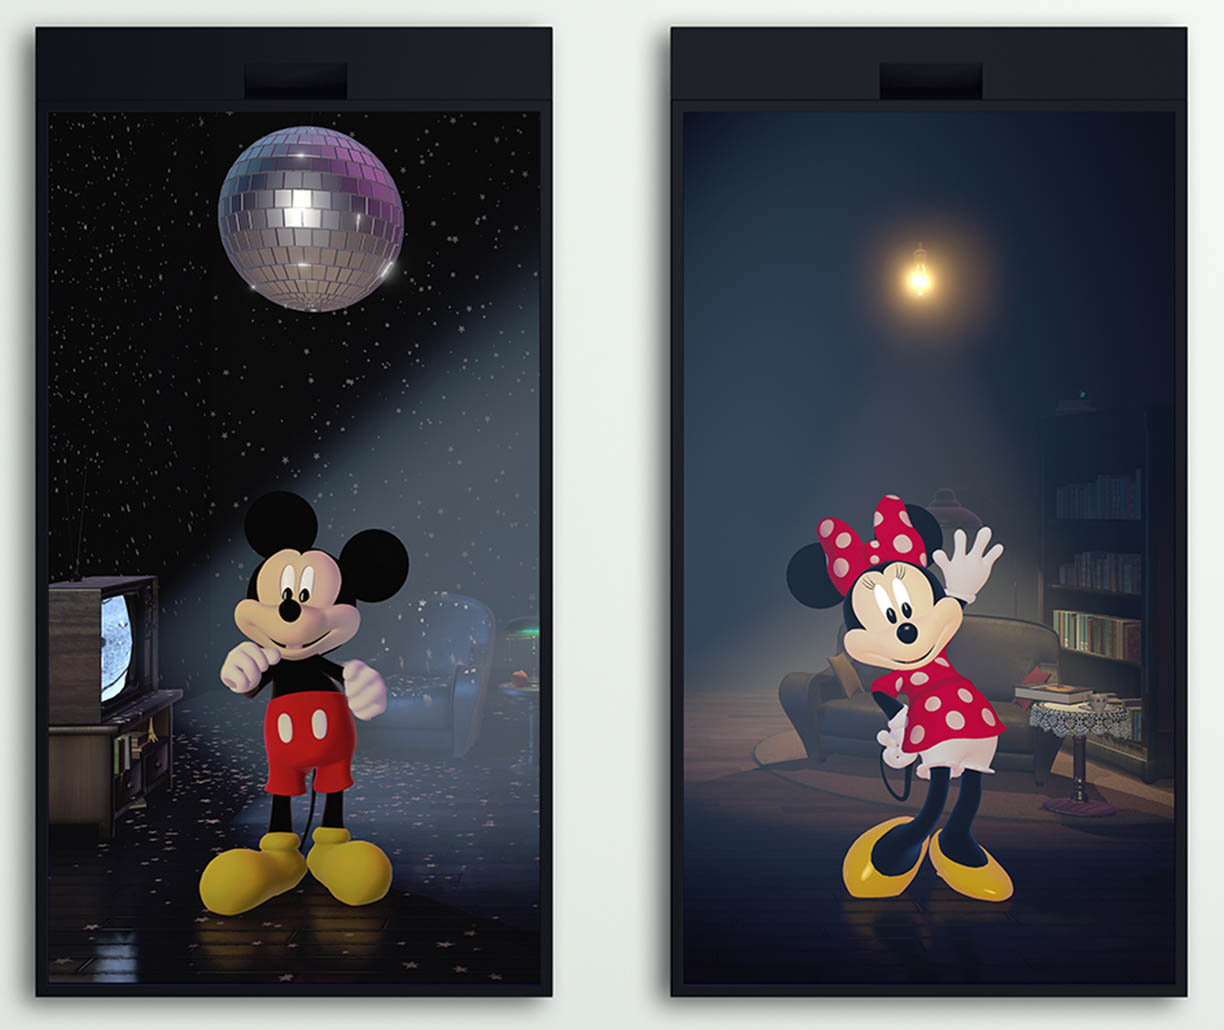 Mickey & Minnie: An Interactive Diptych